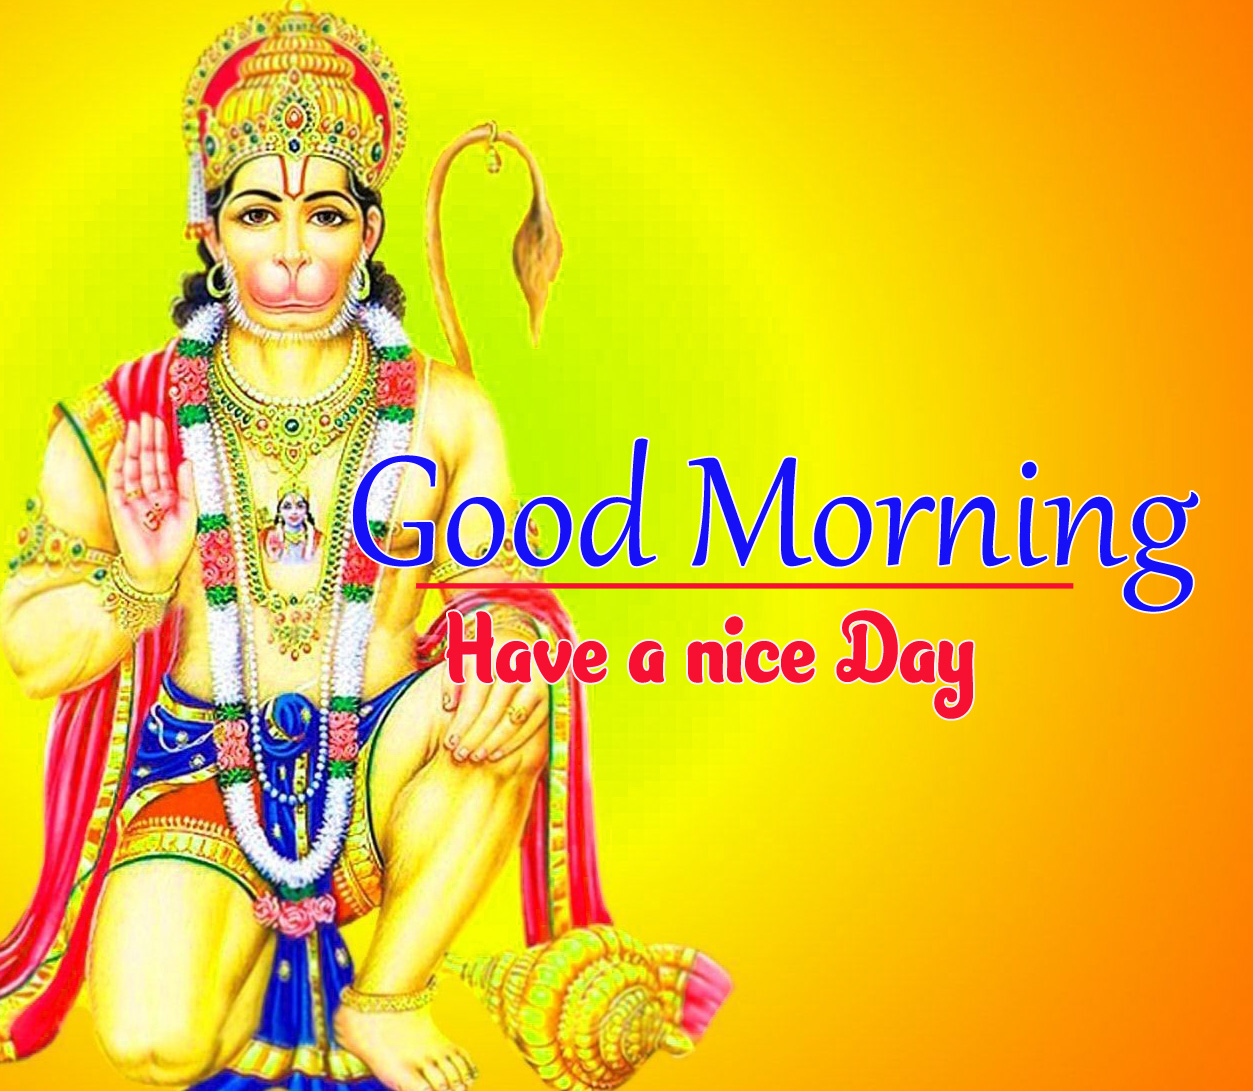 Happy Shubh Mangalwar Good Morning Images 2